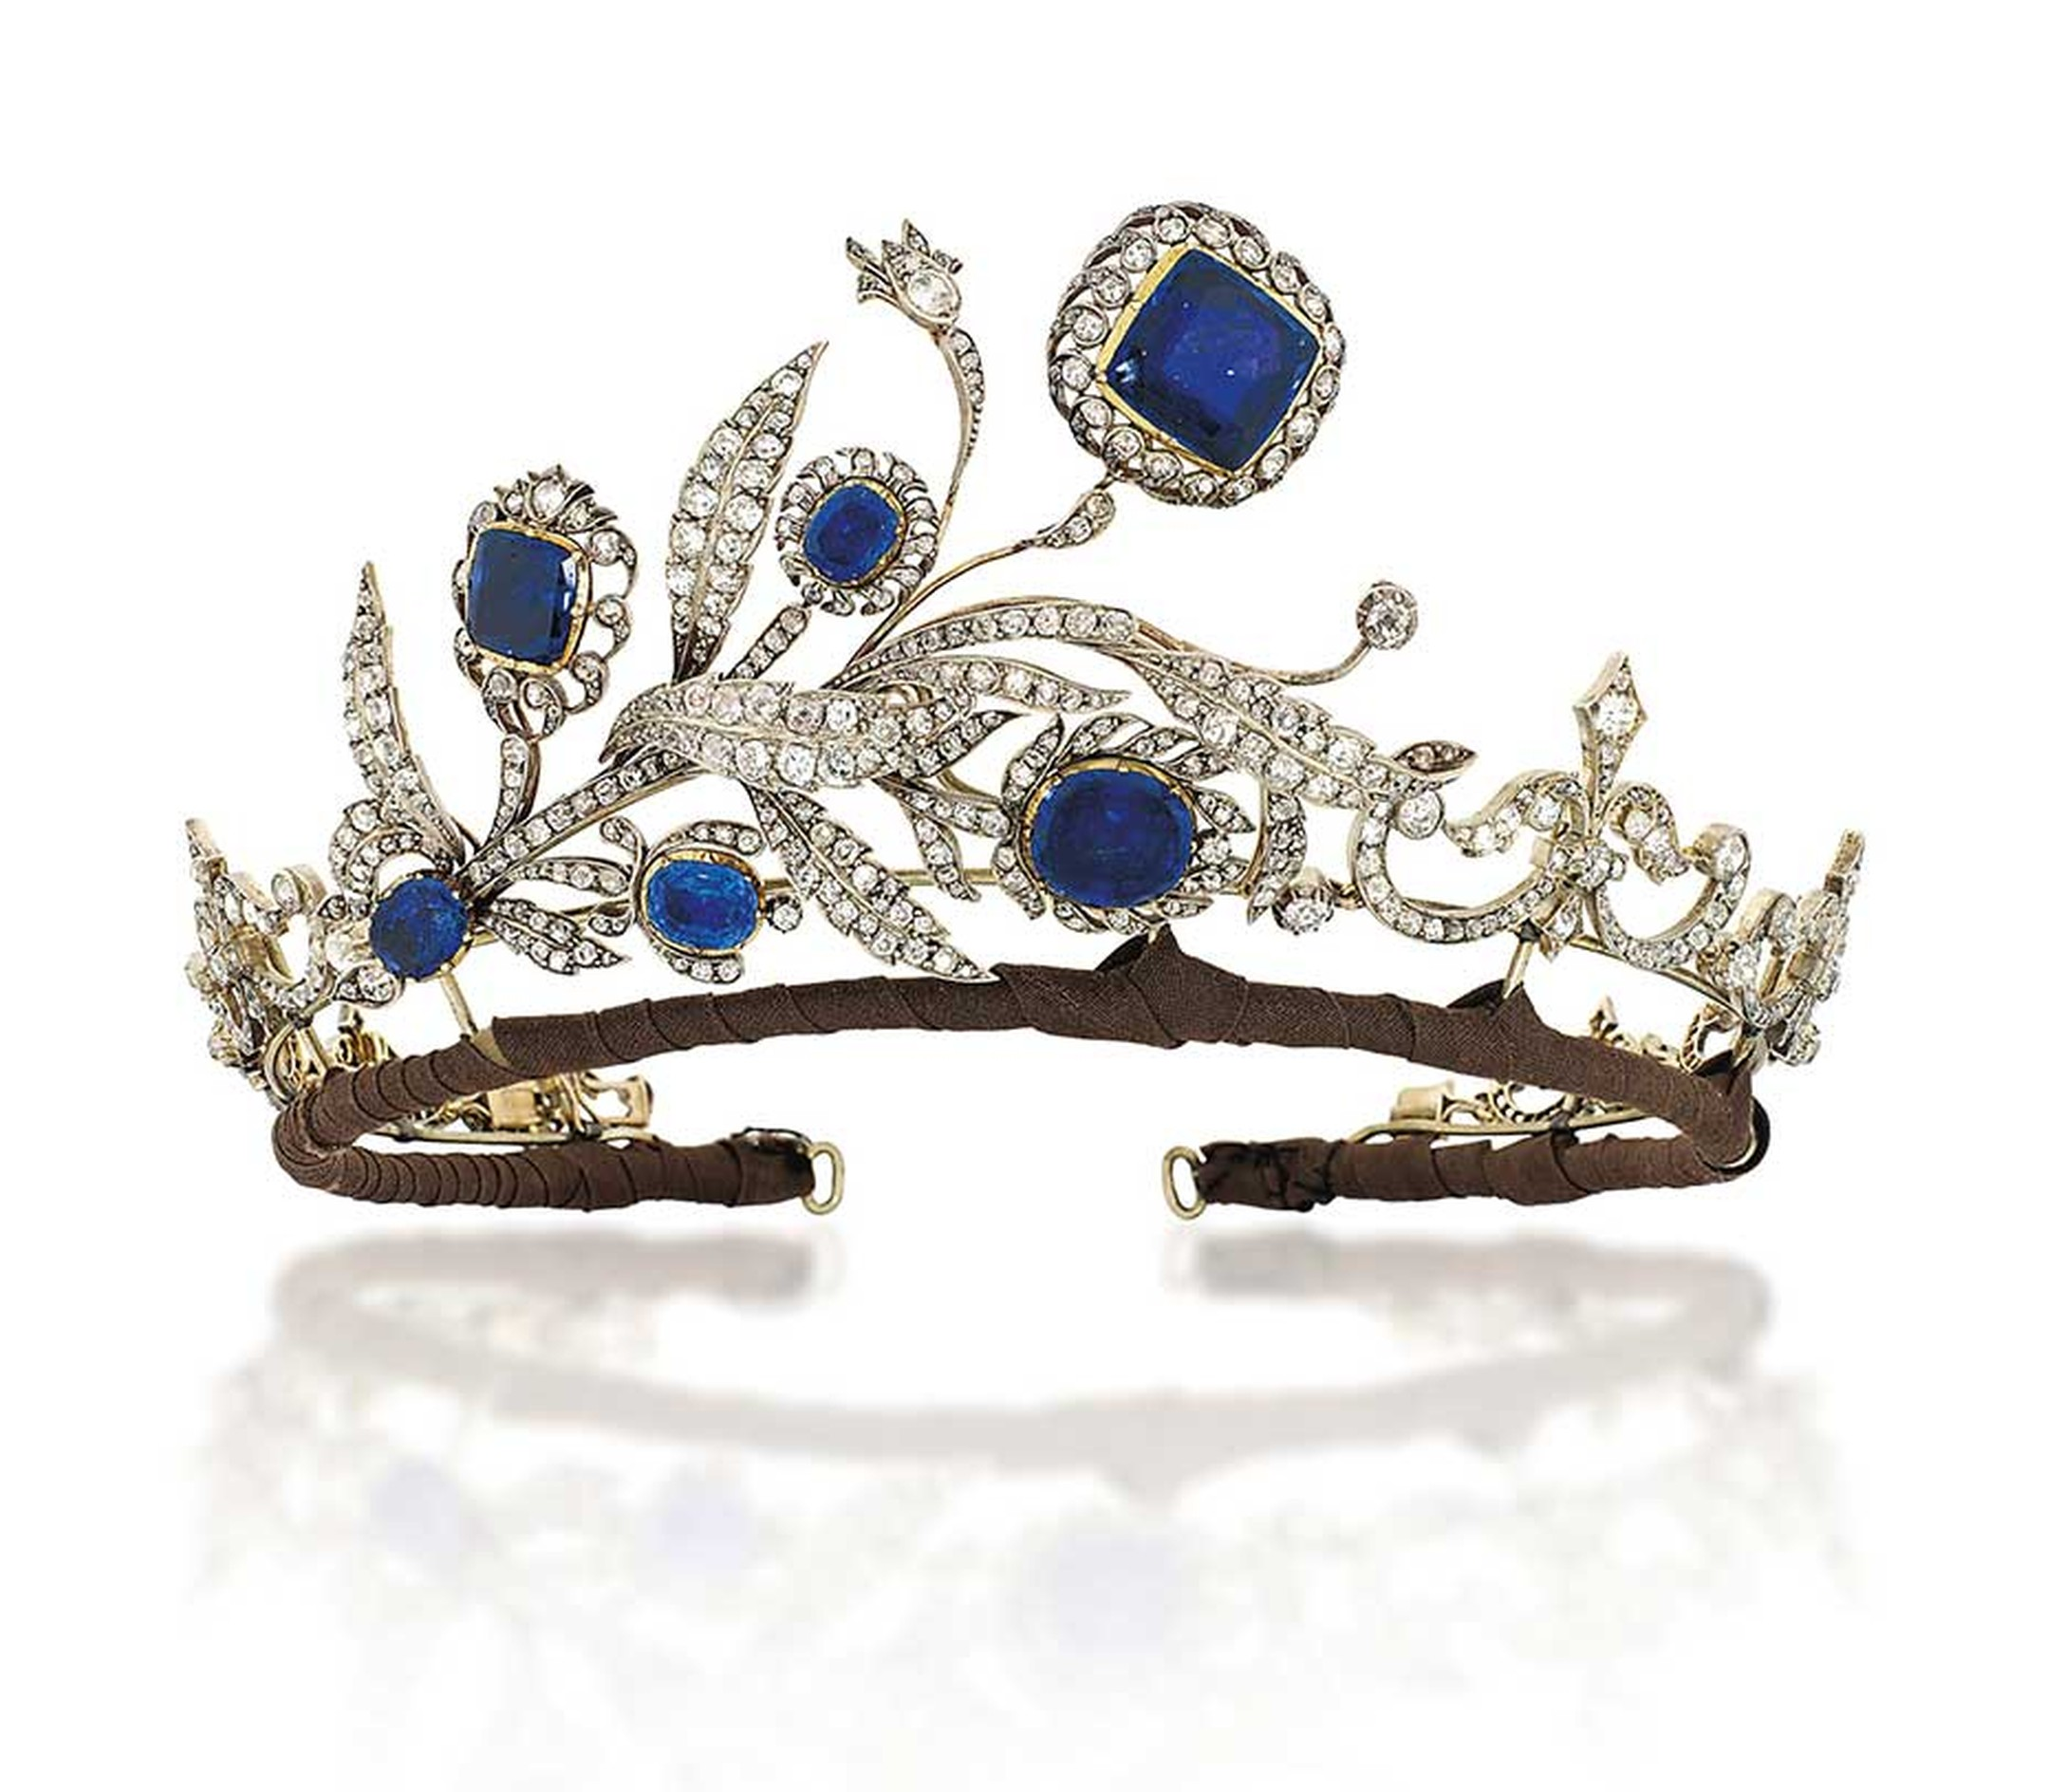 Lot 248, a sapphire and diamond tiara dating from 1890, is regal yet delicate (estimate: £30,000-40,000). Christie's Important Jewels Sale on 26 November at King Street in London.